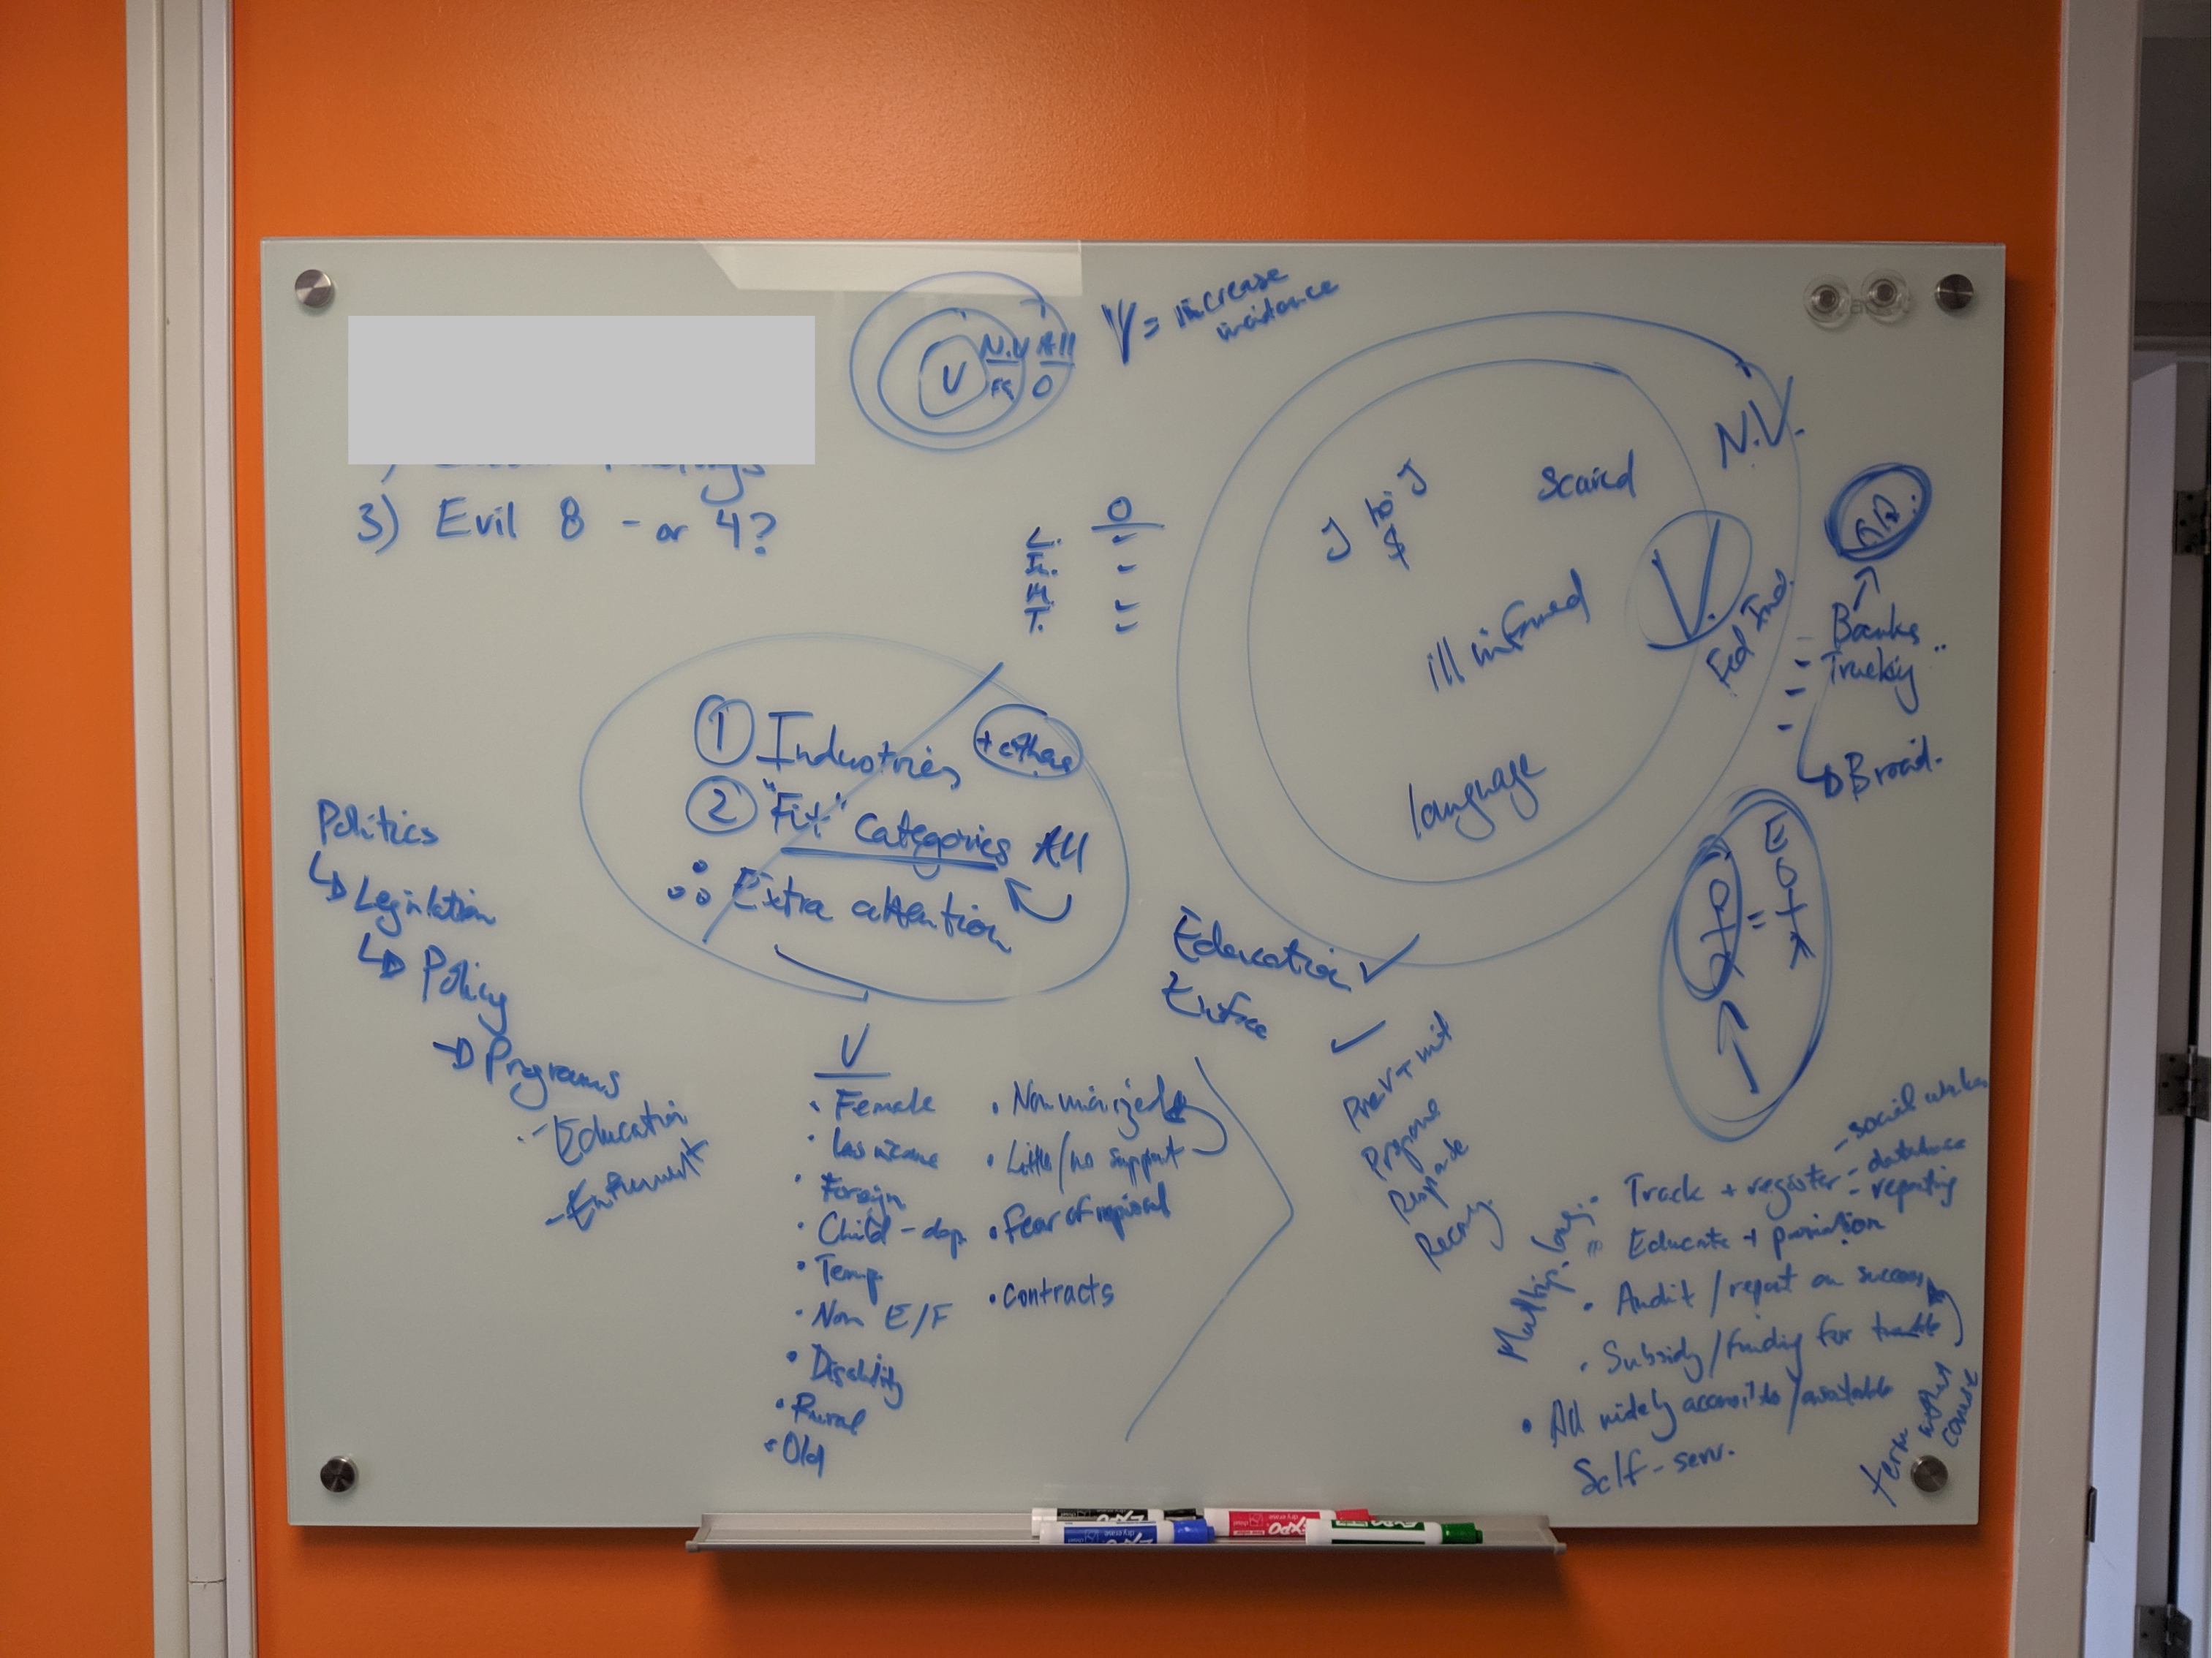 A white board against an orange wall. There are solutions and diagrams written all over the white board.